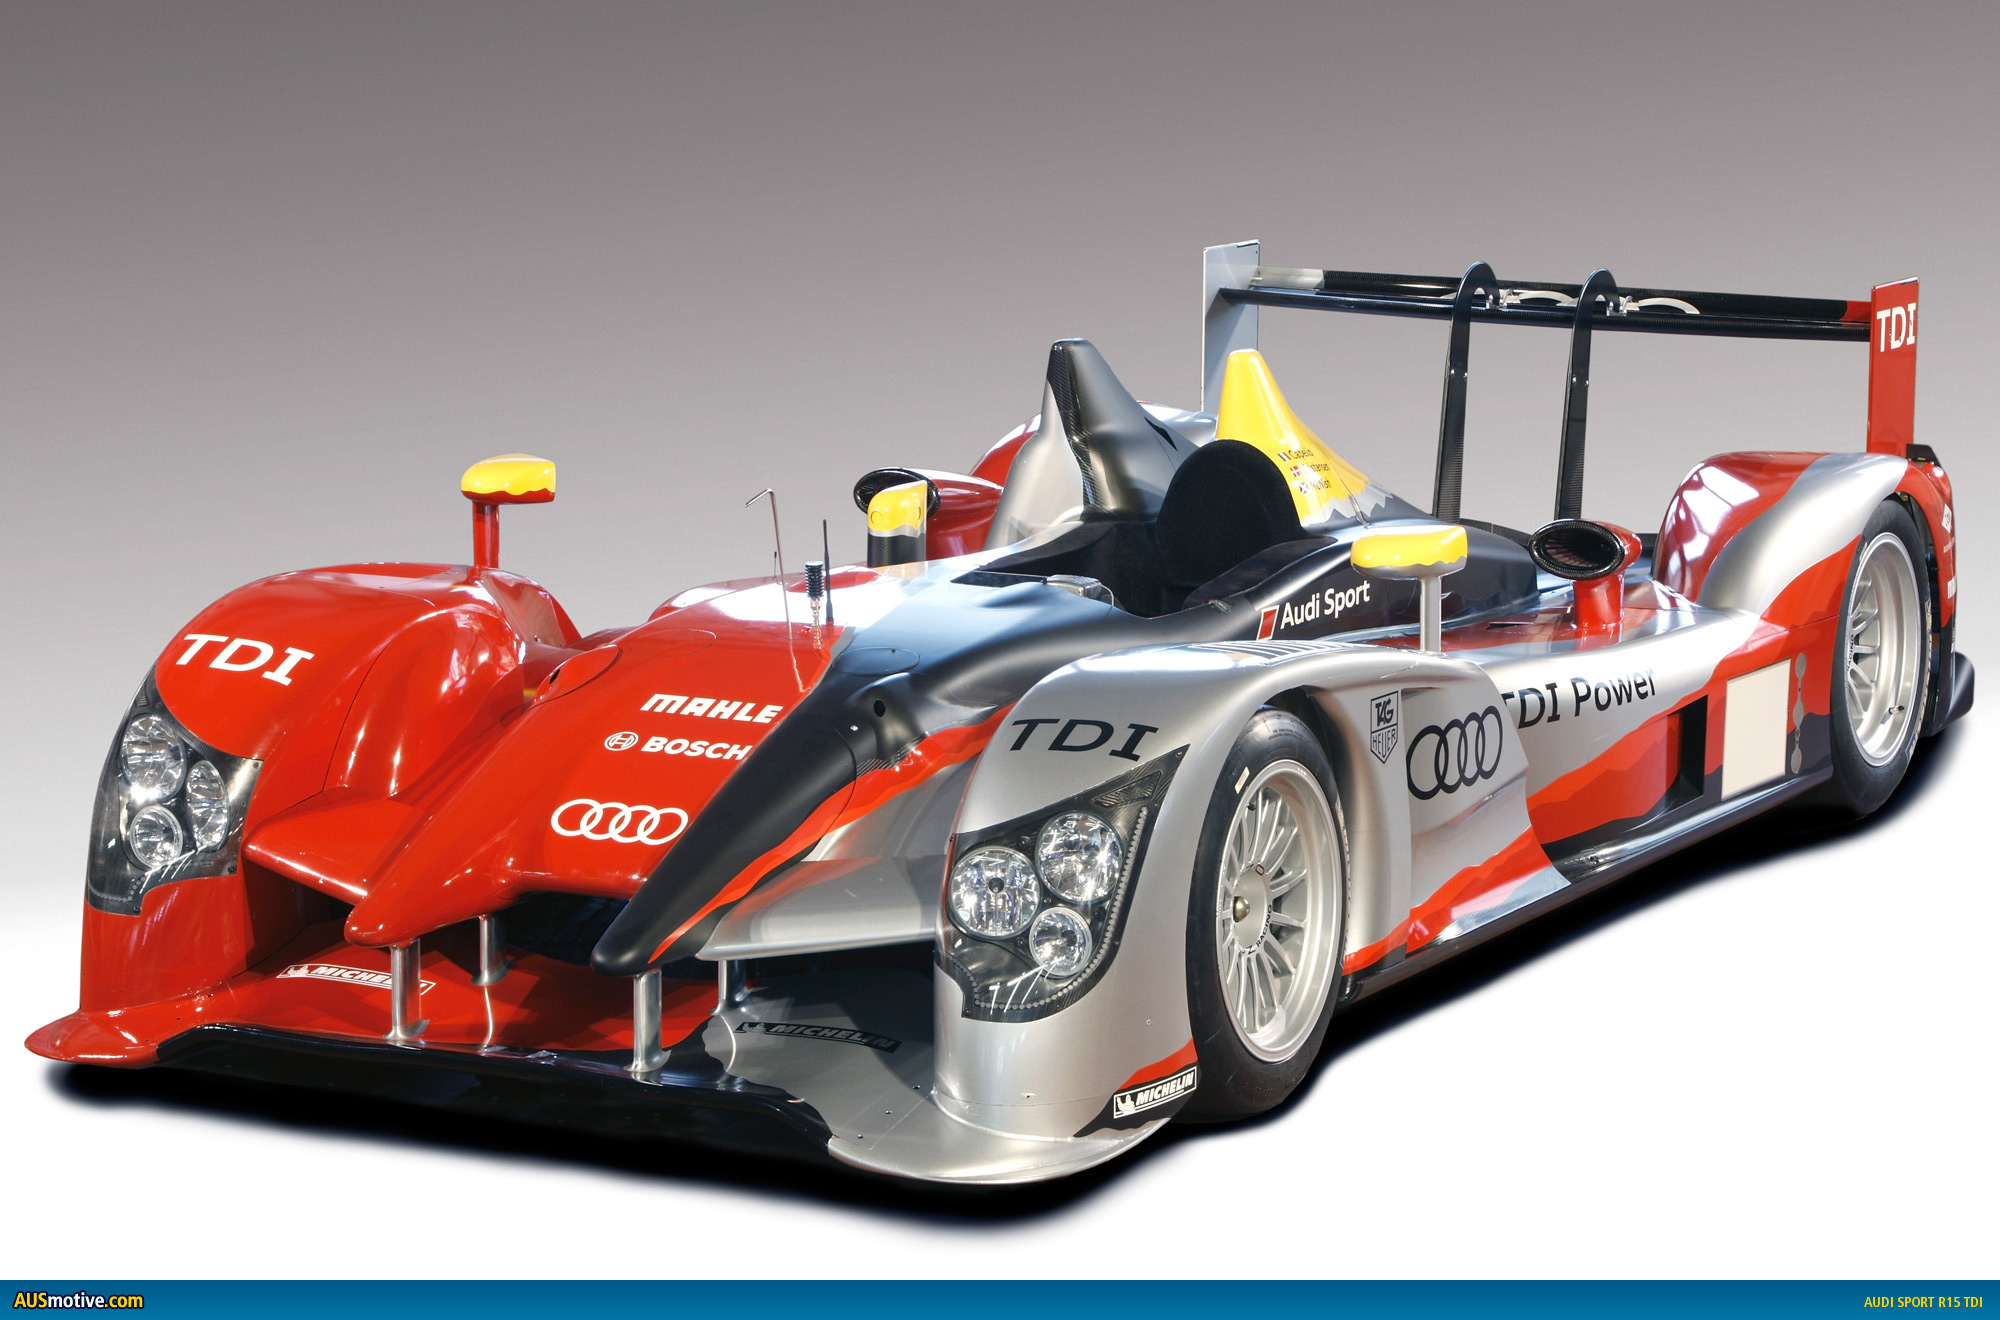 audi refreshes r15 le mans racer. Black Bedroom Furniture Sets. Home Design Ideas